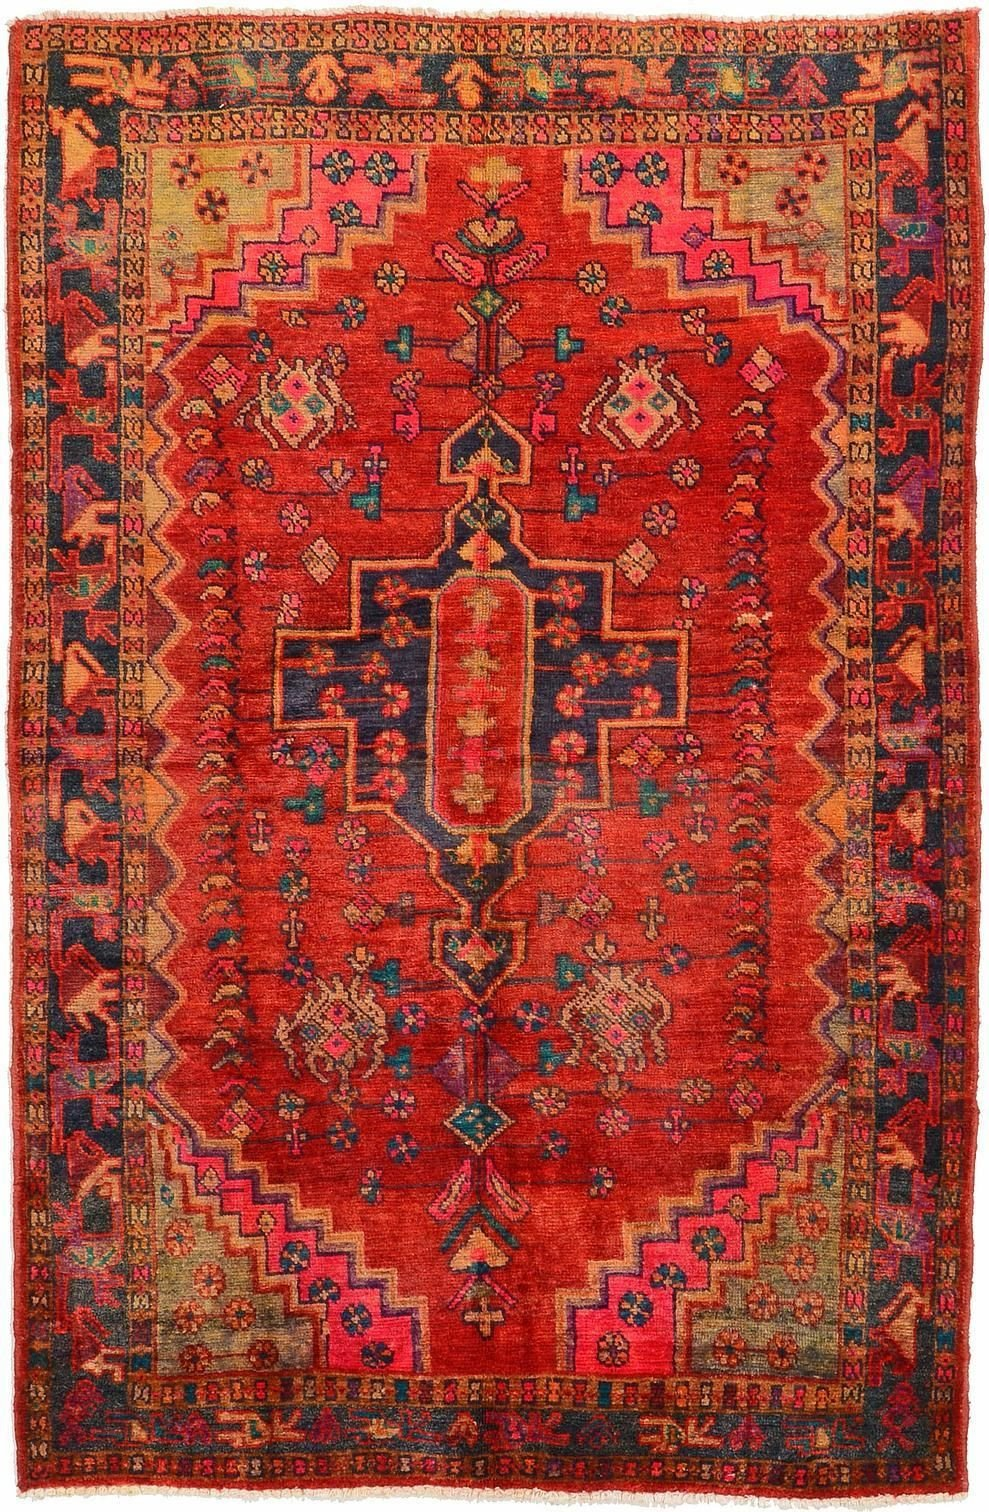 Red Rugs for Bedroom Awesome Red 5 1 X 7 9 Hamedan Rug Persian Rugs